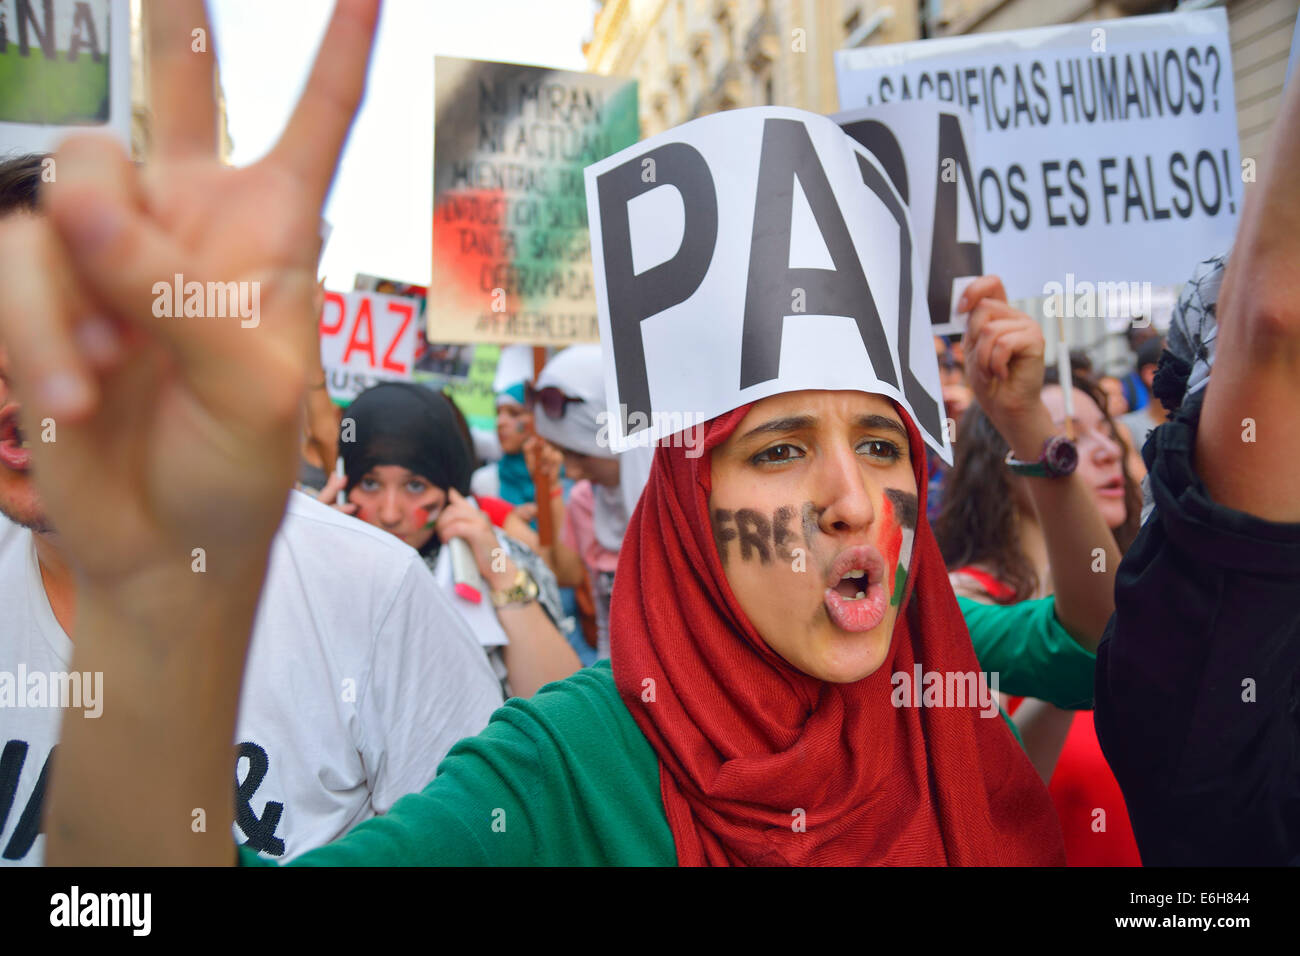 Palestinian woman demanding peace and protesting against Israeli attacks in the Gaza Strip during a demonstration - Stock Image